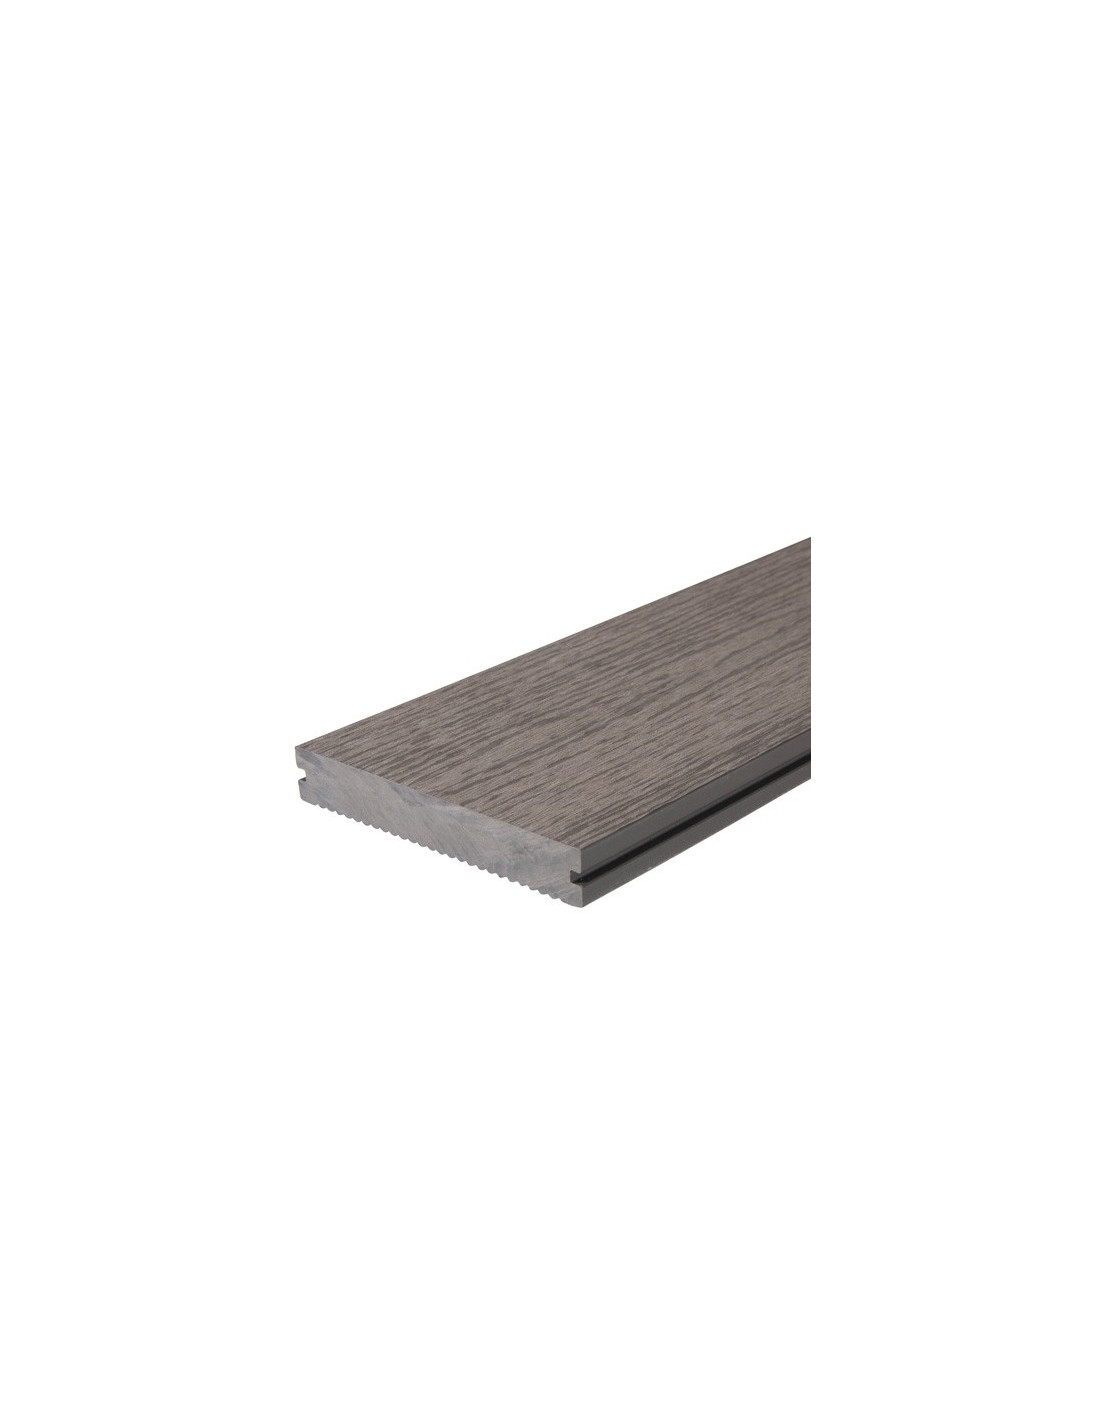 Terrasse composite profil plein bois and co - Terrasse composite pleine ...